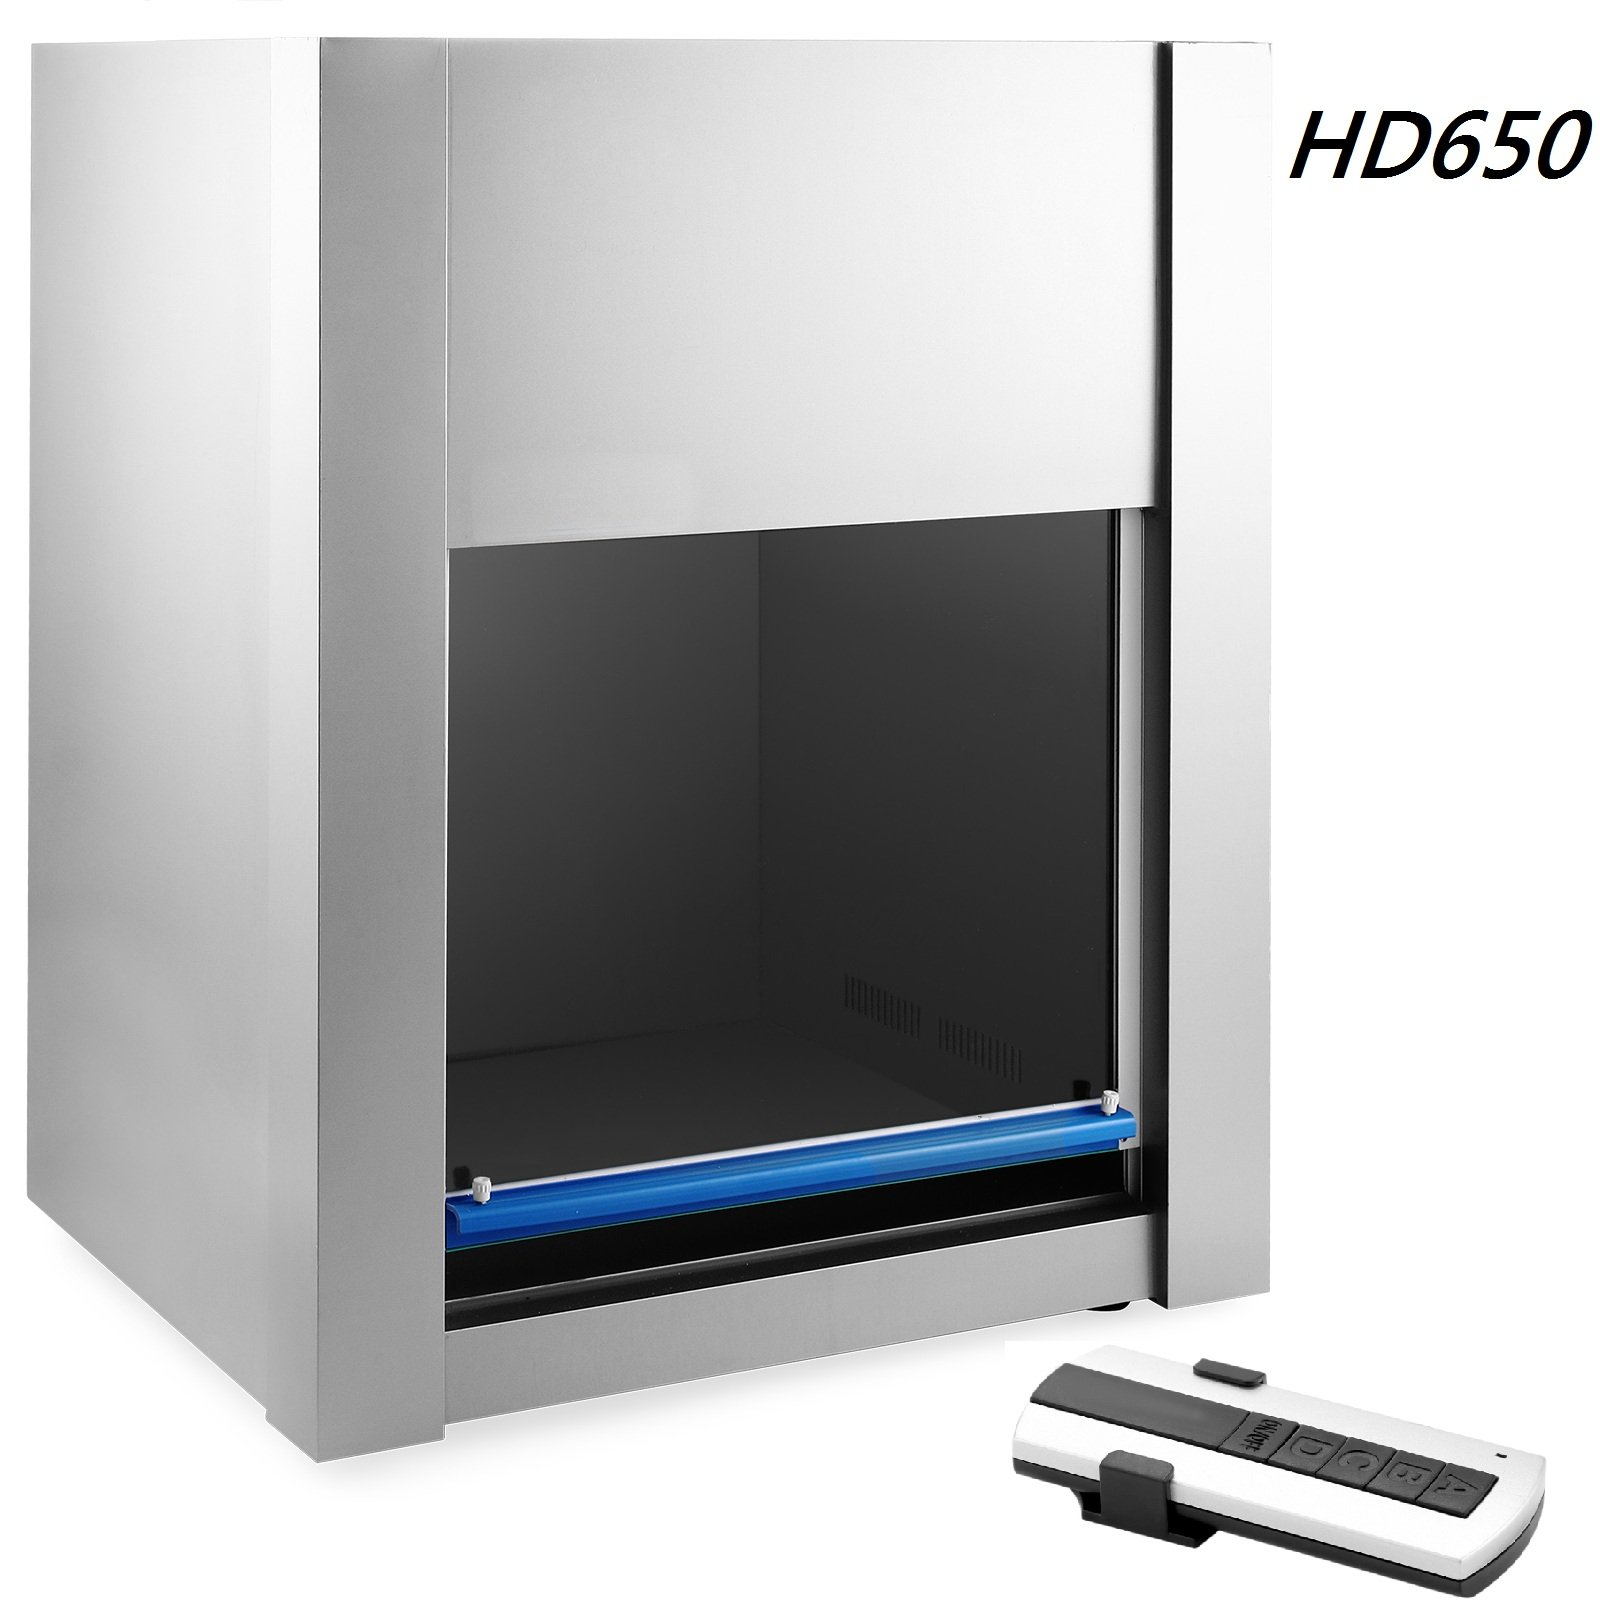 Superland HD-650 Laminar Flow Hood Filter Class 100 Laminar Flow Hood Horizontal Flow Laminar Flow Hood Fan for Lab and Industry Air Clean Bench (HD-650: 9.8-17.7inch/s) by Superland